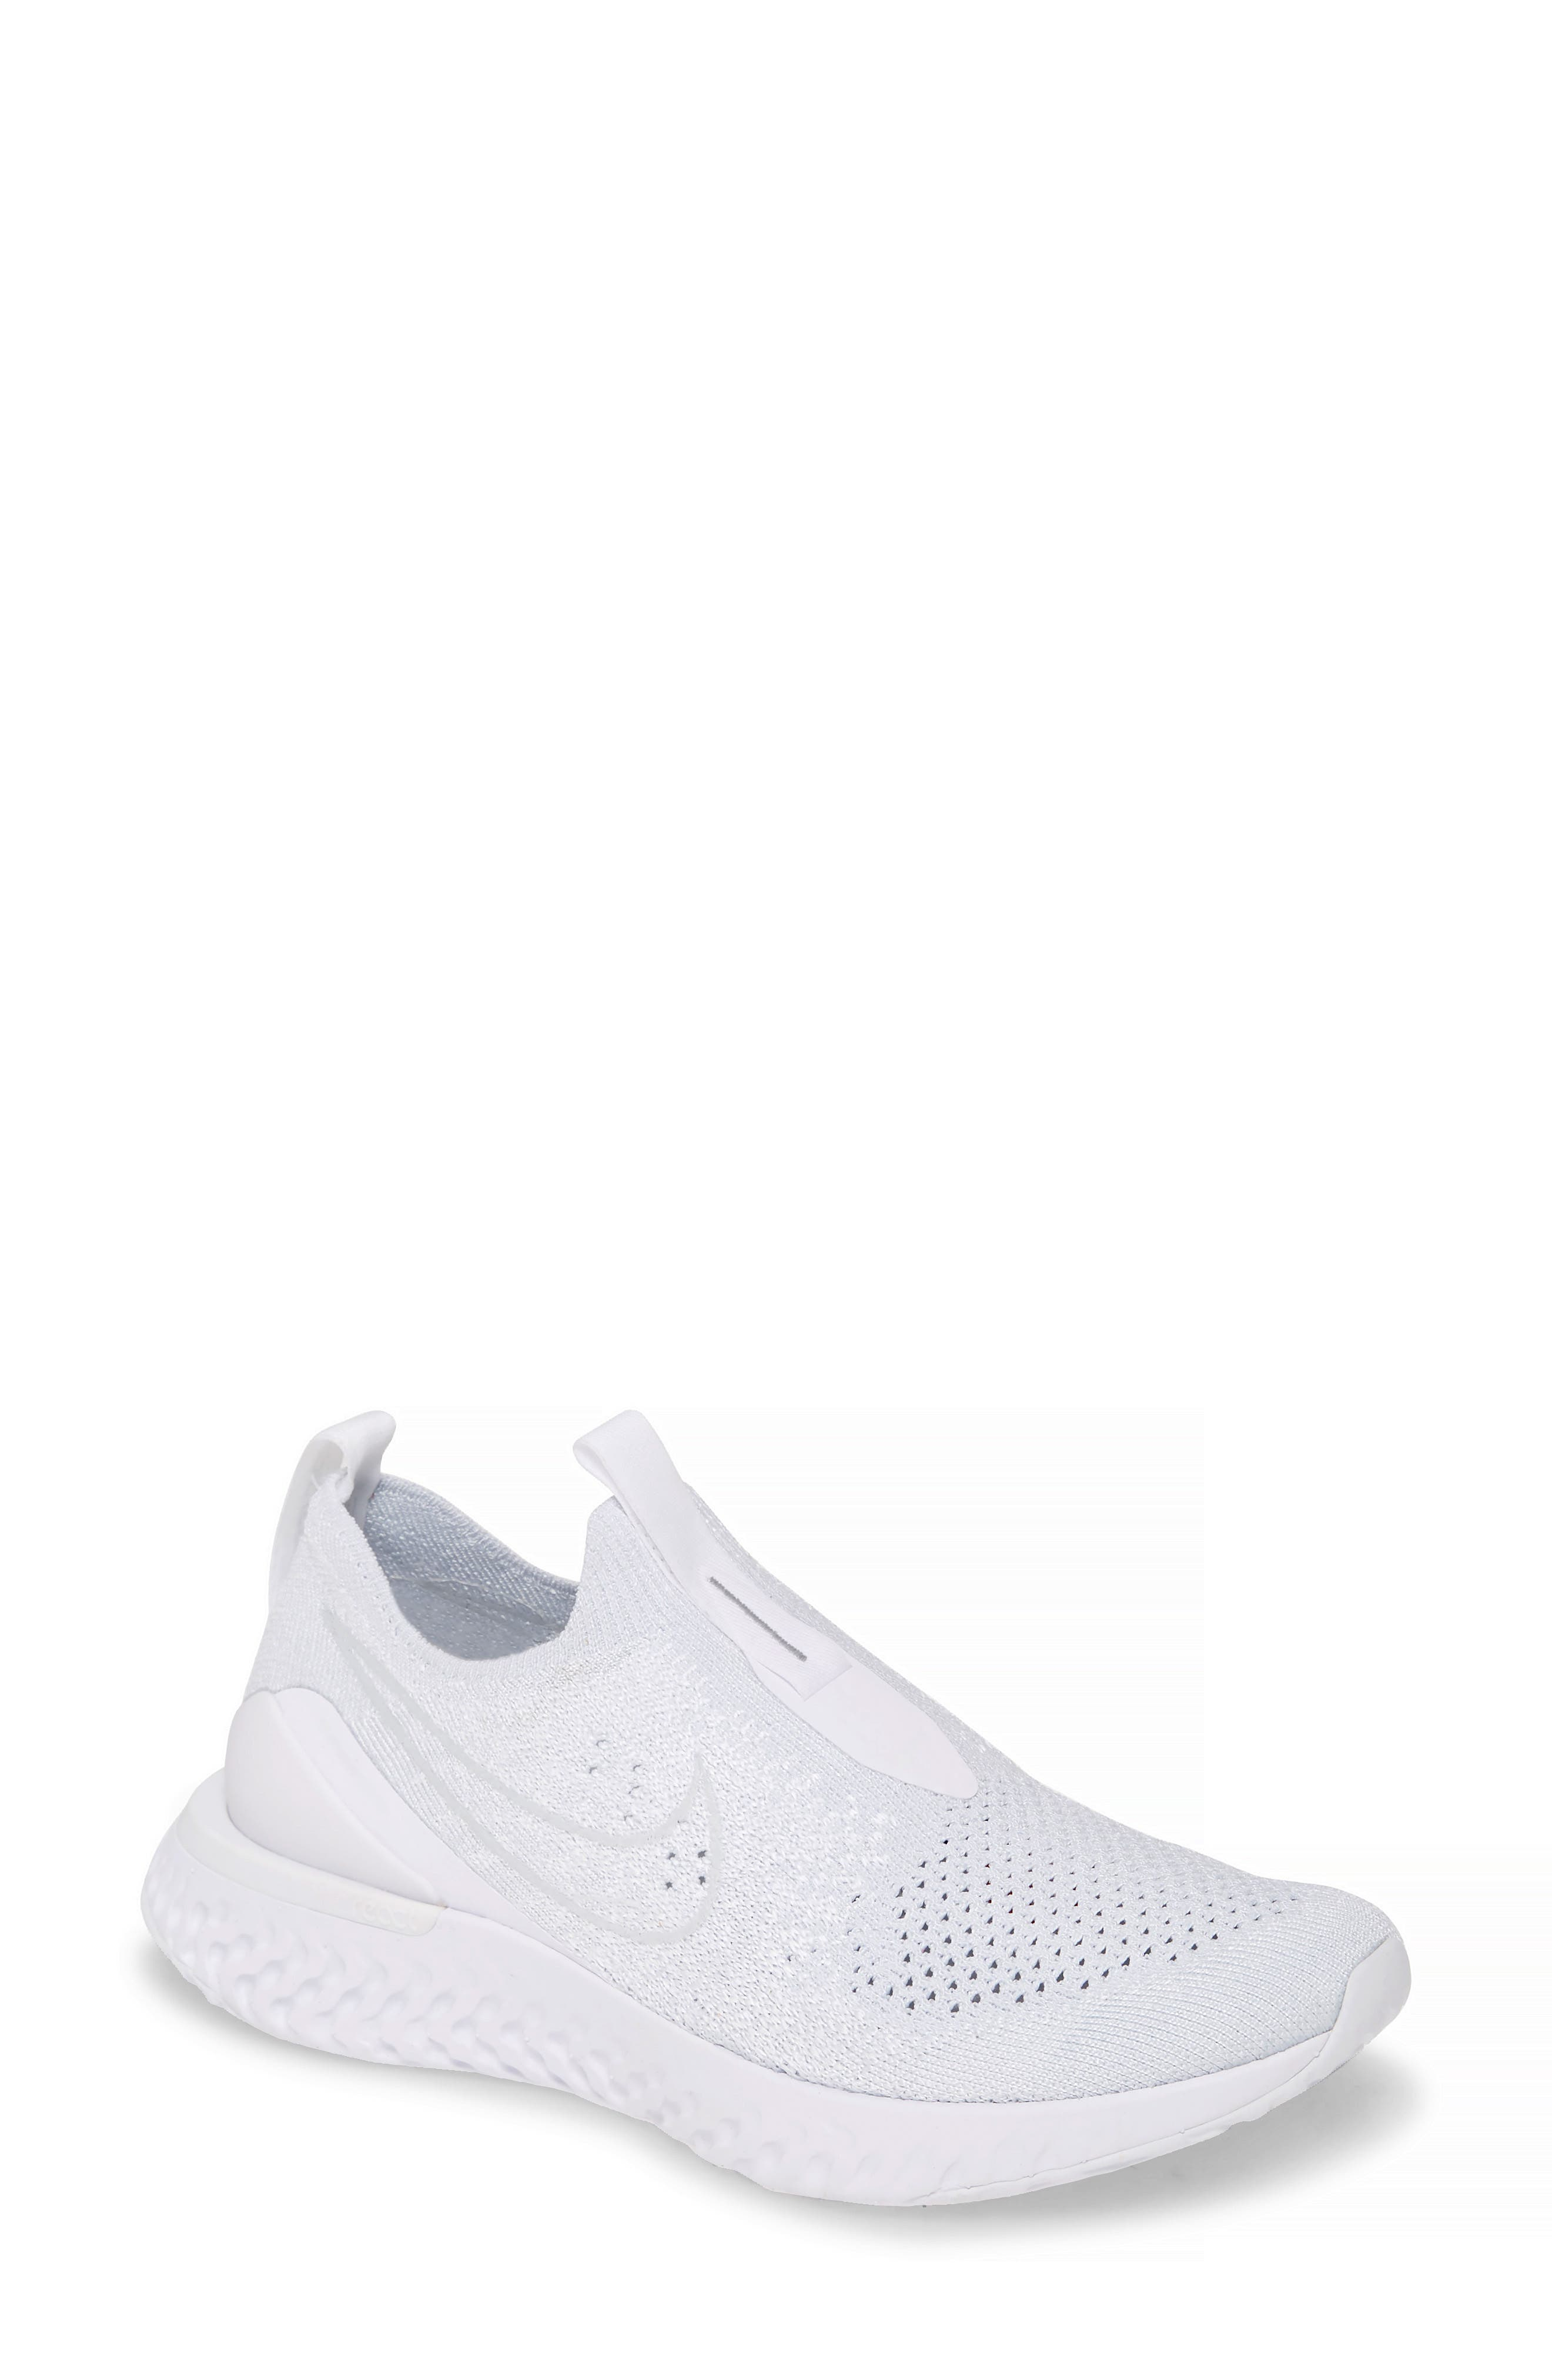 Women's Nike Shoes   Nordstrom